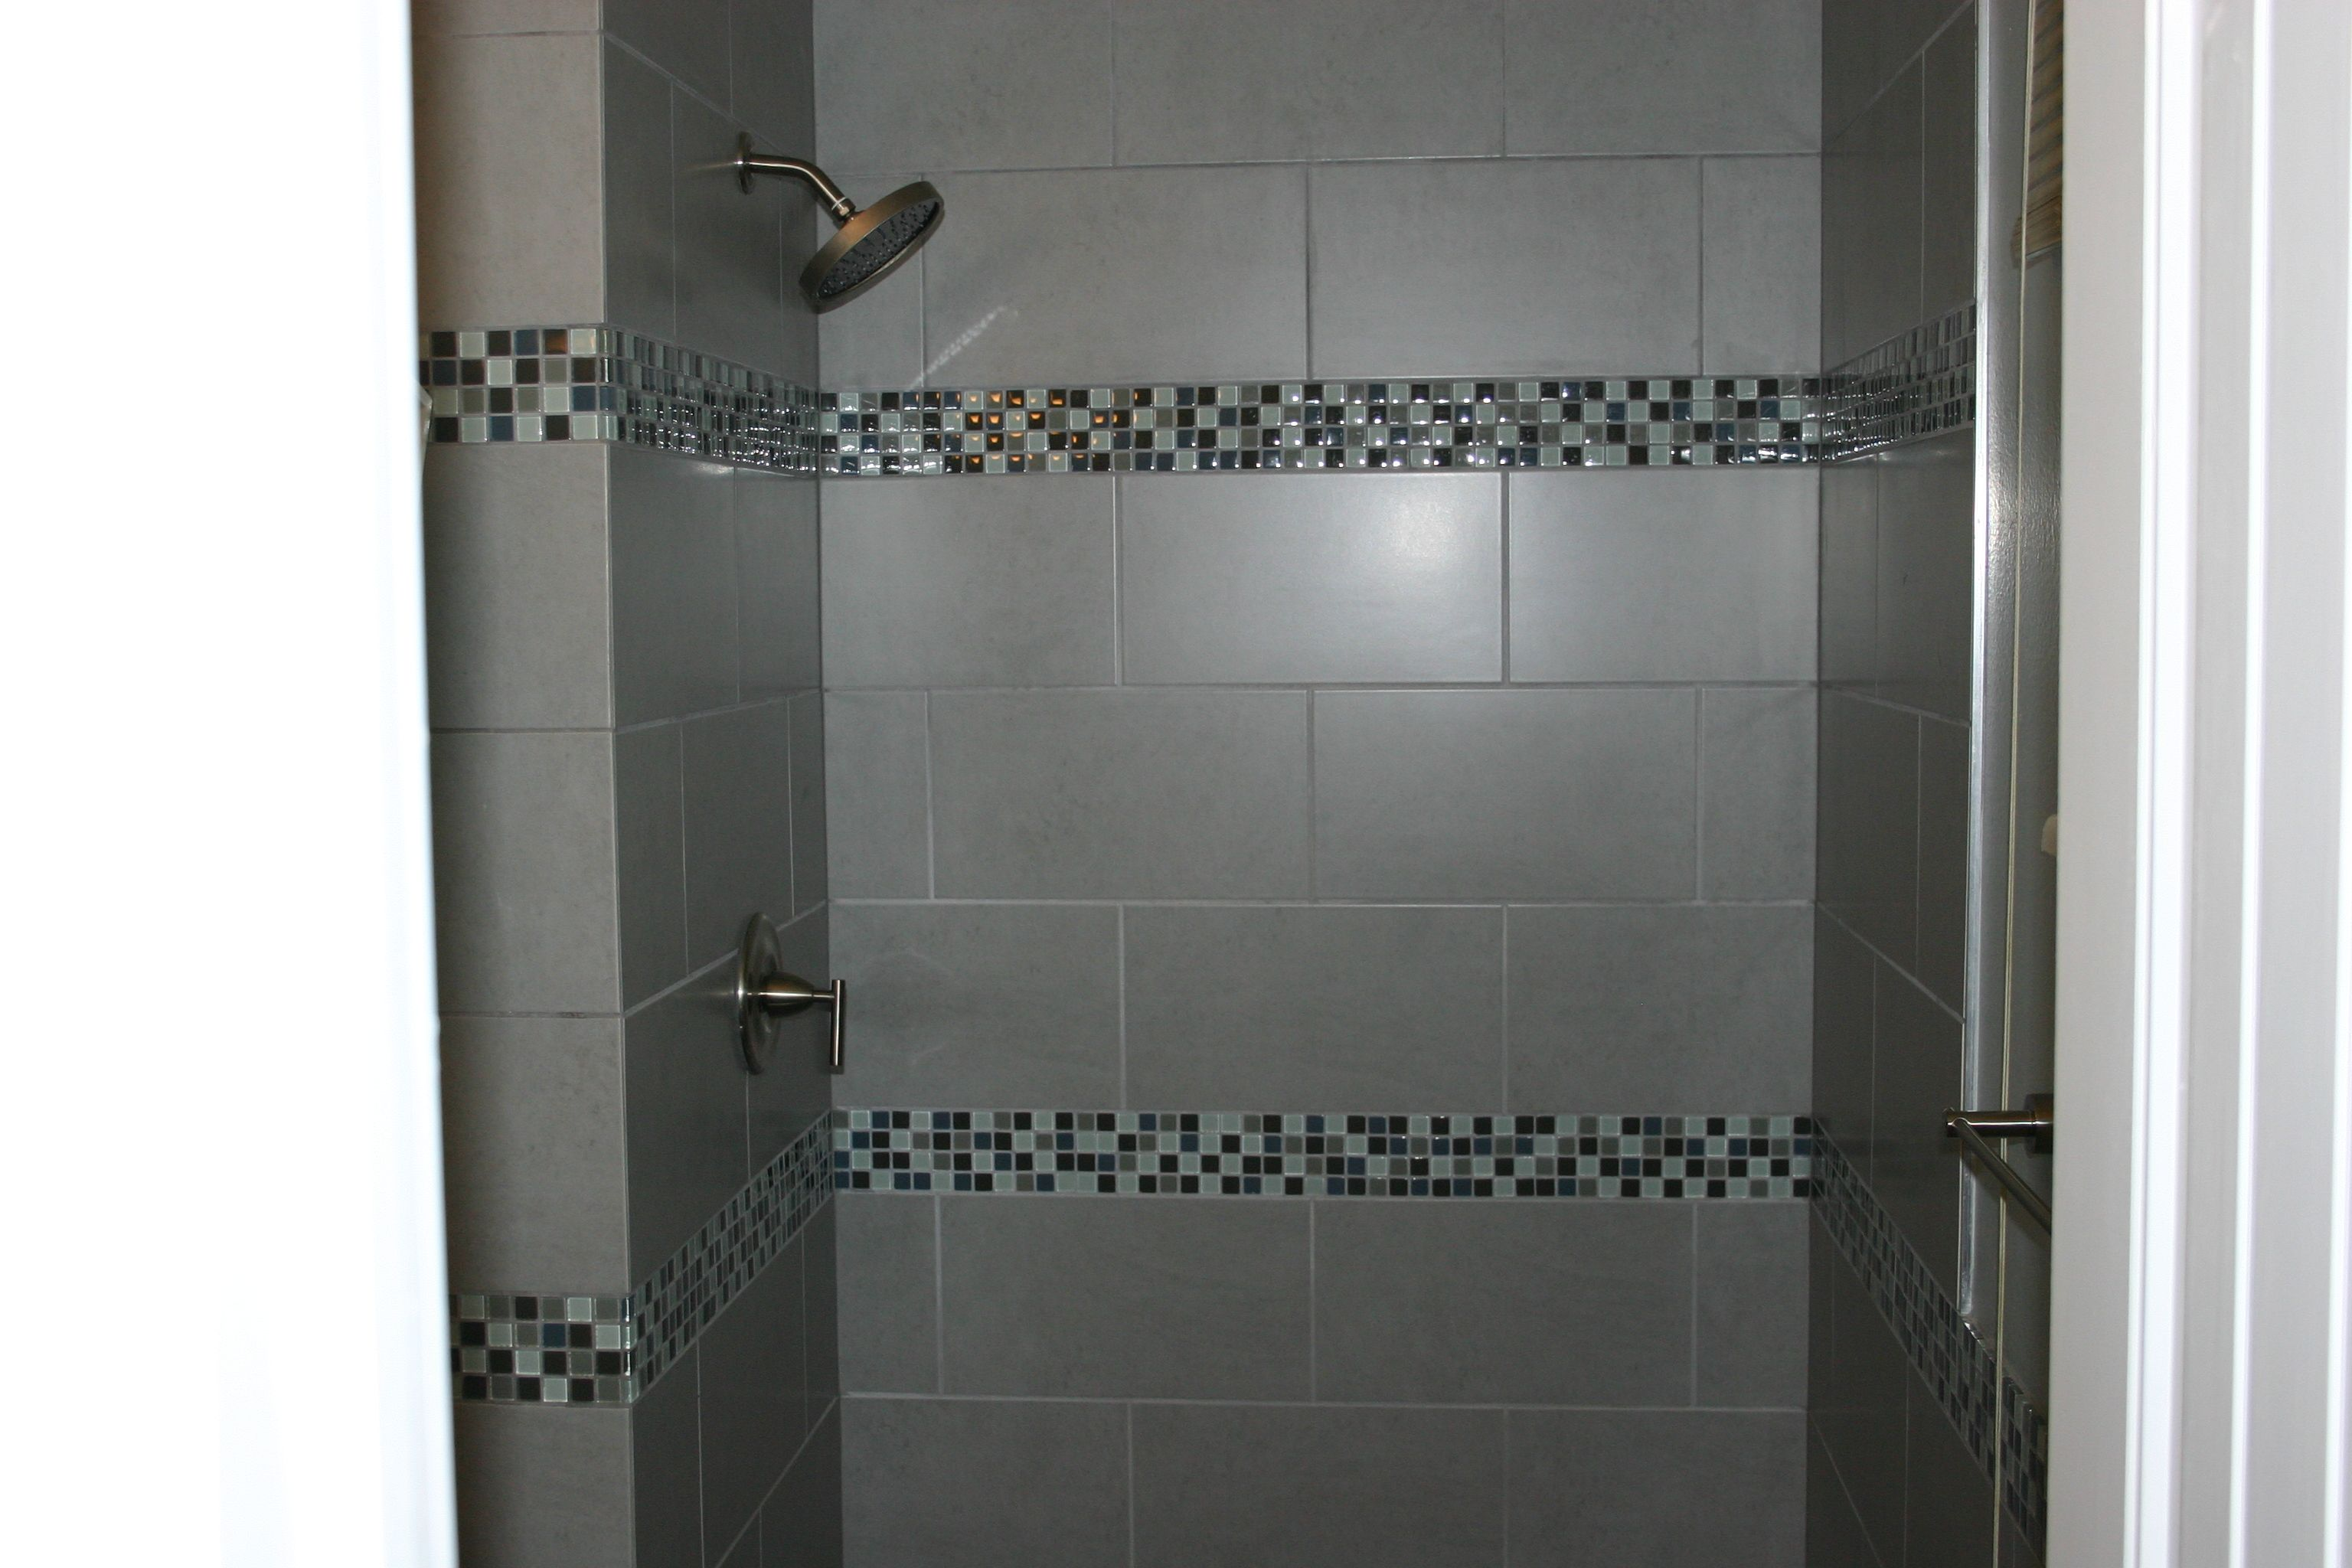 tiled shower designs | Bathroom Tile Designs, Ideas & Pictures: How ...